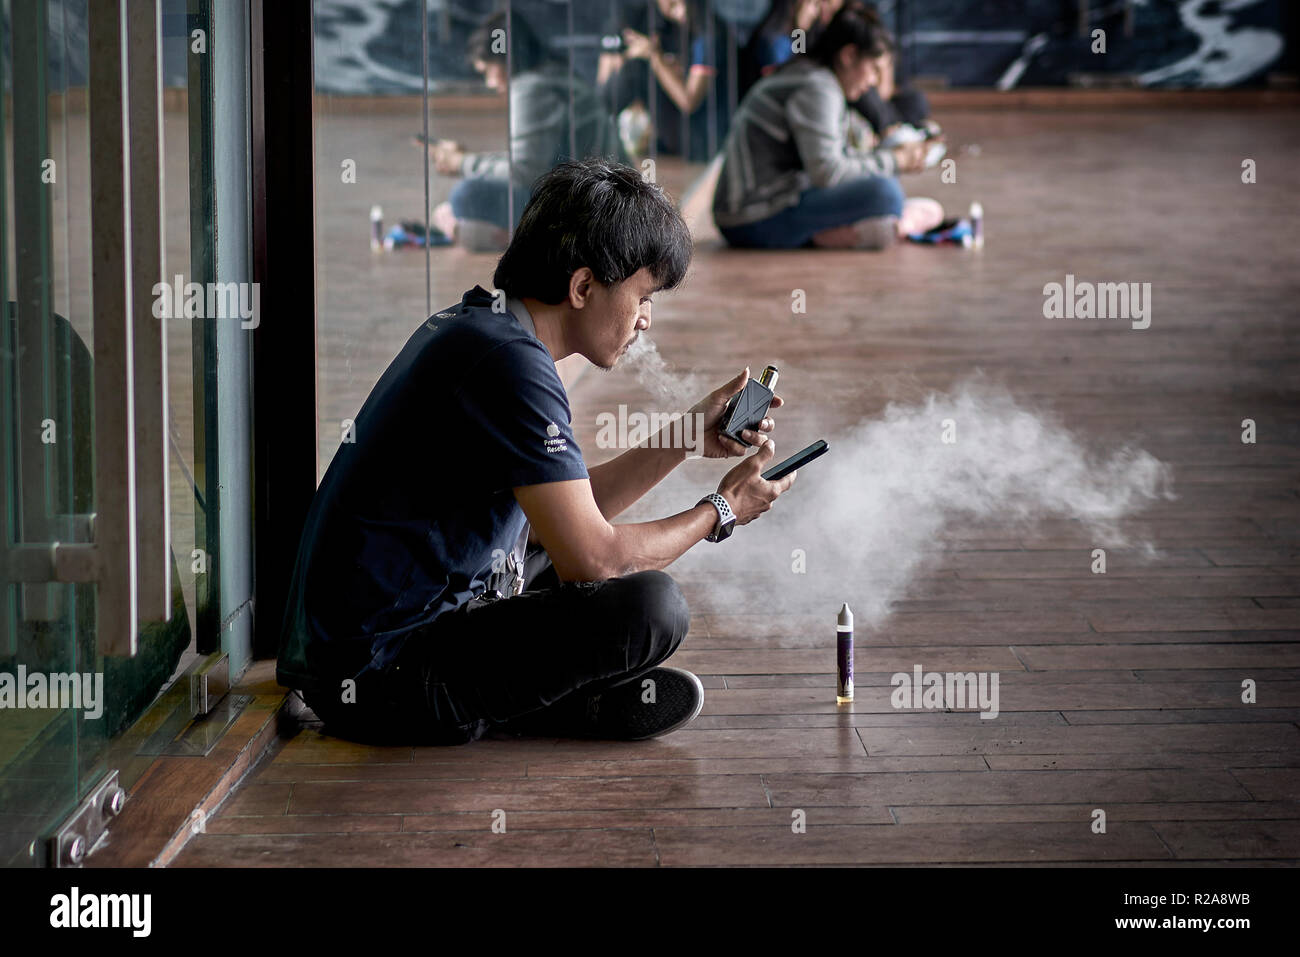 Vaping. Man smoking an e cigarette and blowing a large cloud of smoke - Stock Image